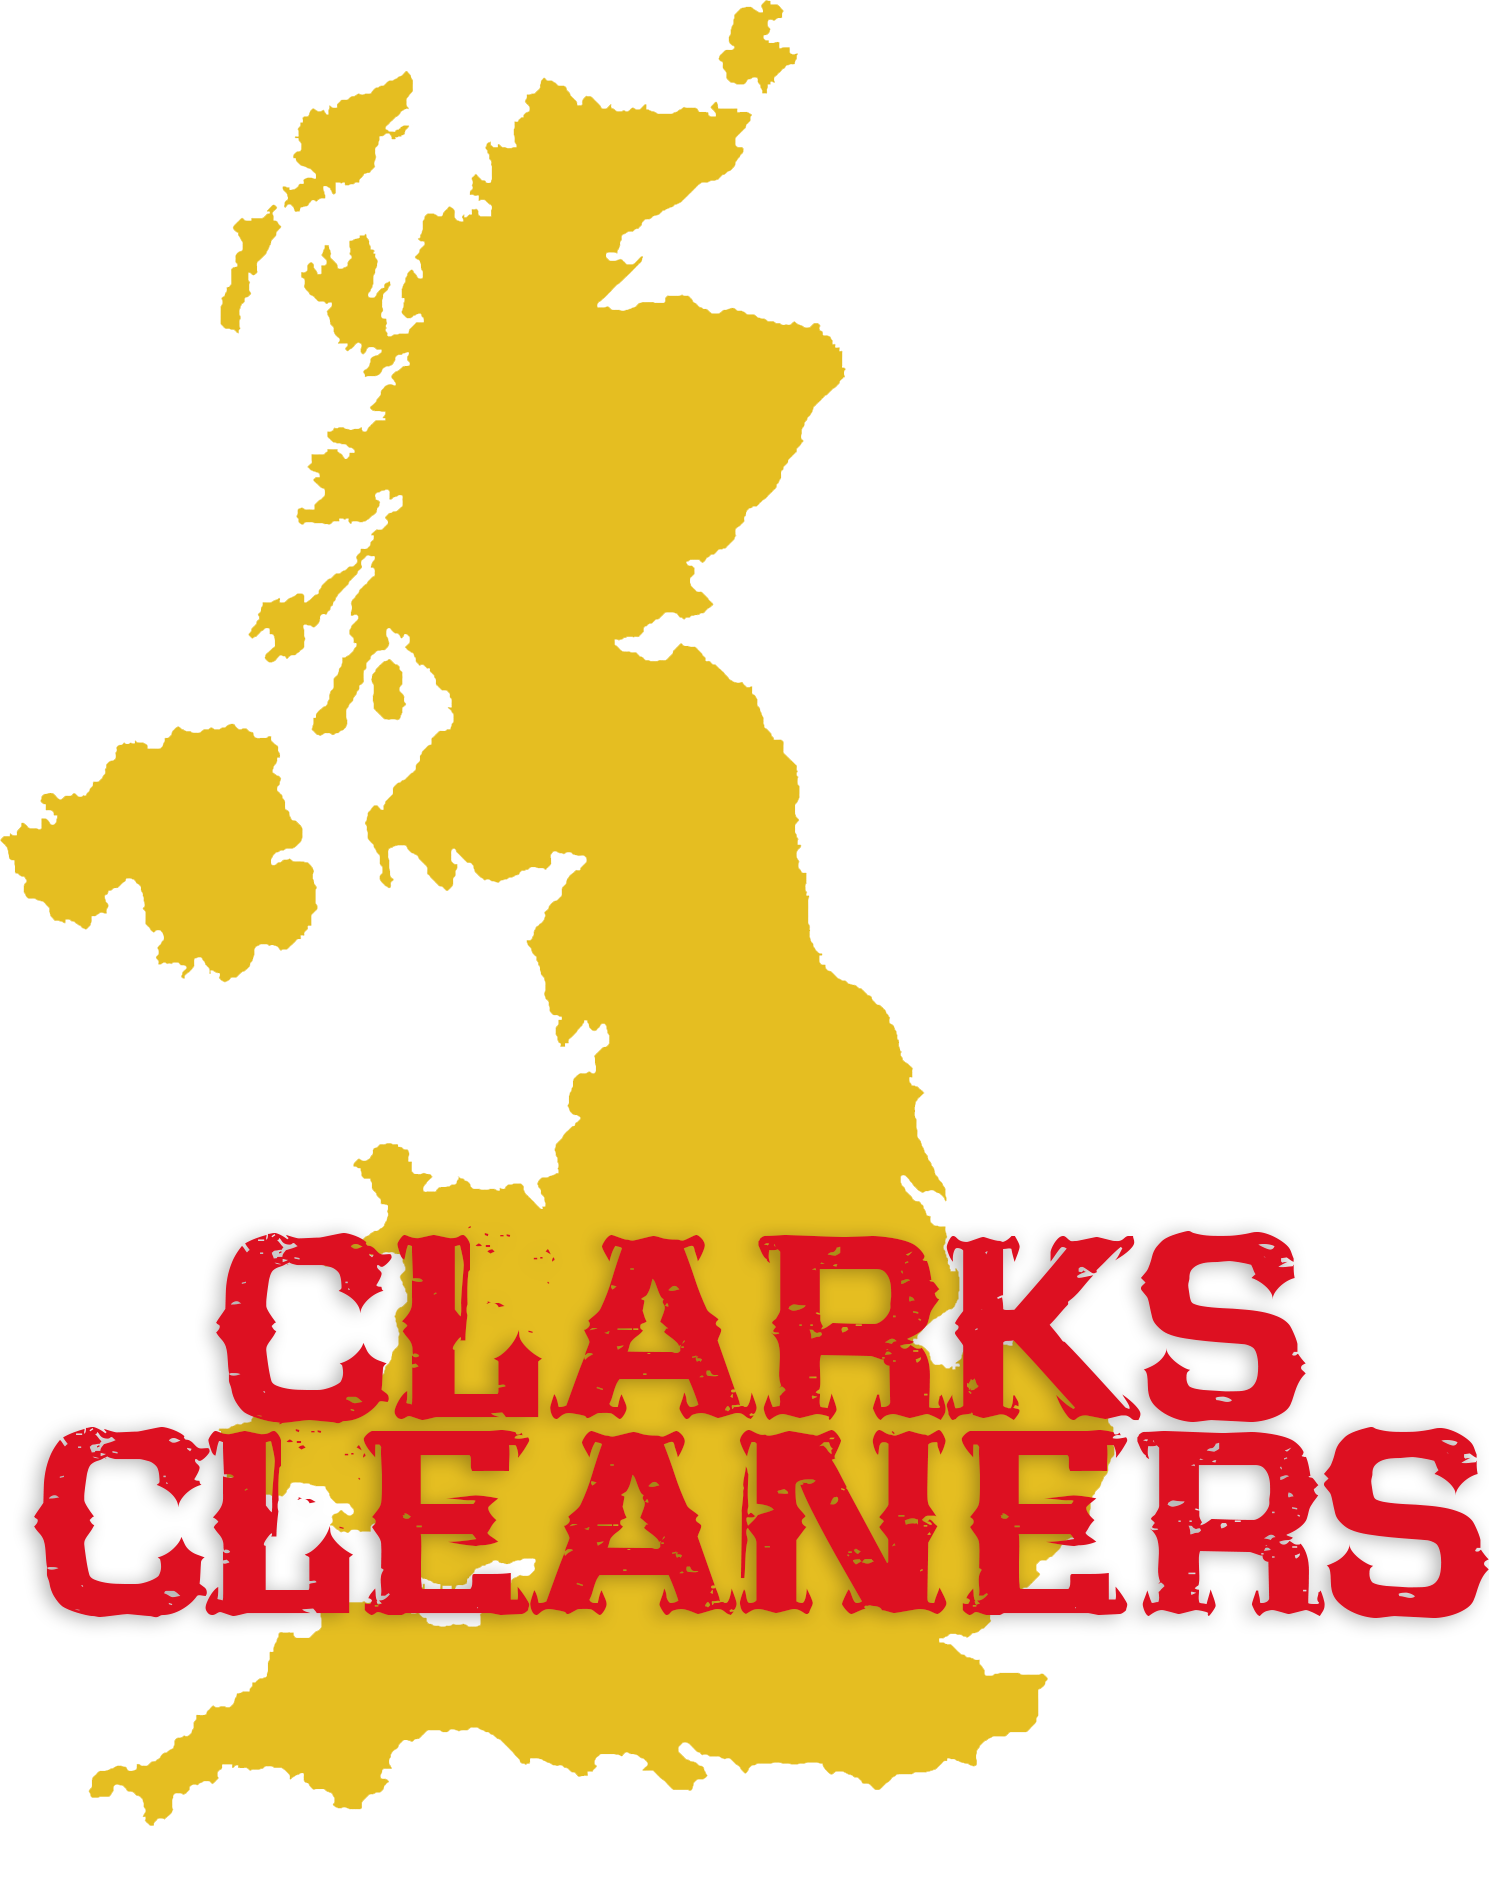 Clarks Cleaners